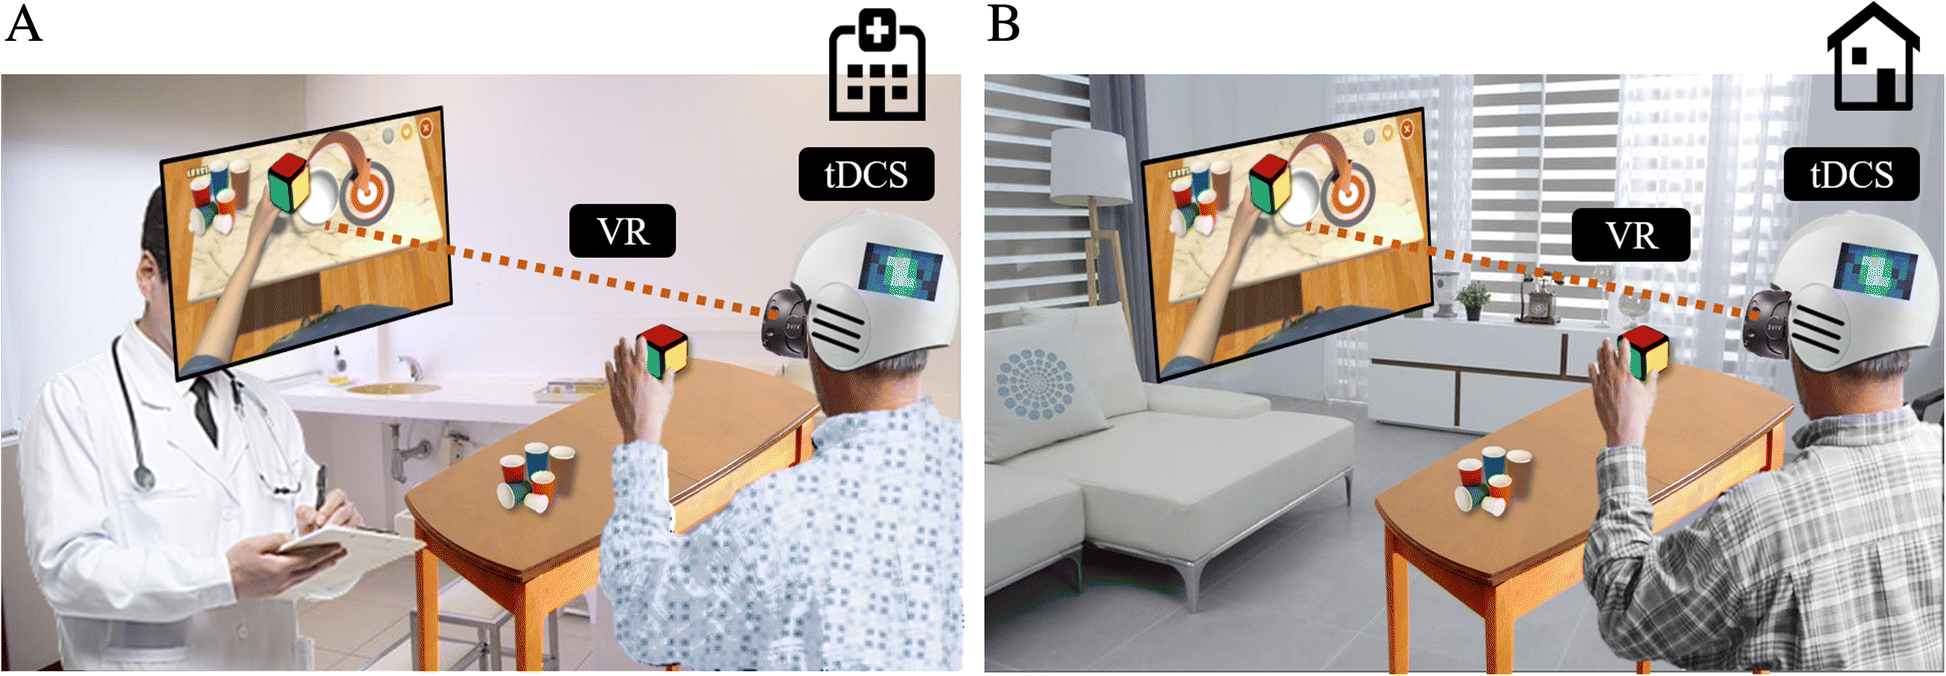 [ARTICLE] Transcranial direct current stimulation for the treatment of motor impairment following traumatic brain injury – Full Text